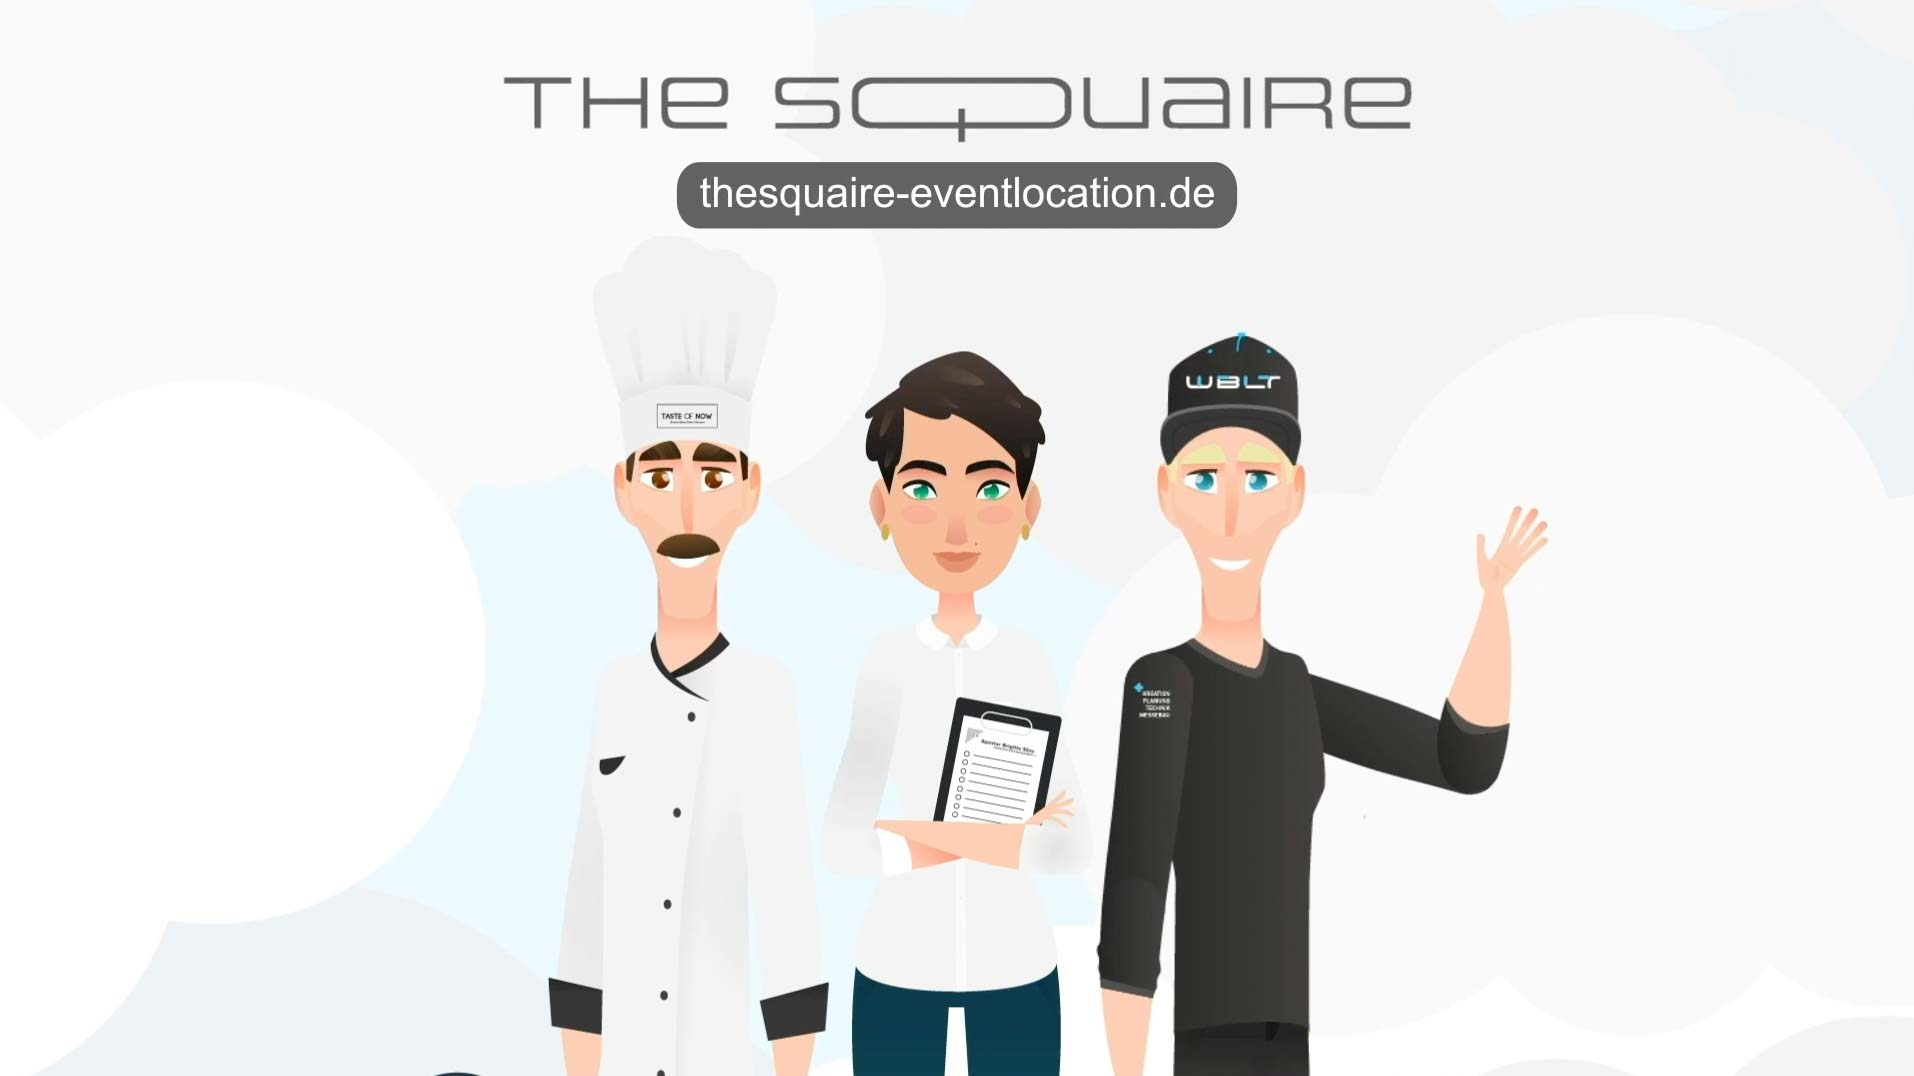 The Squaire: Let's Event Again